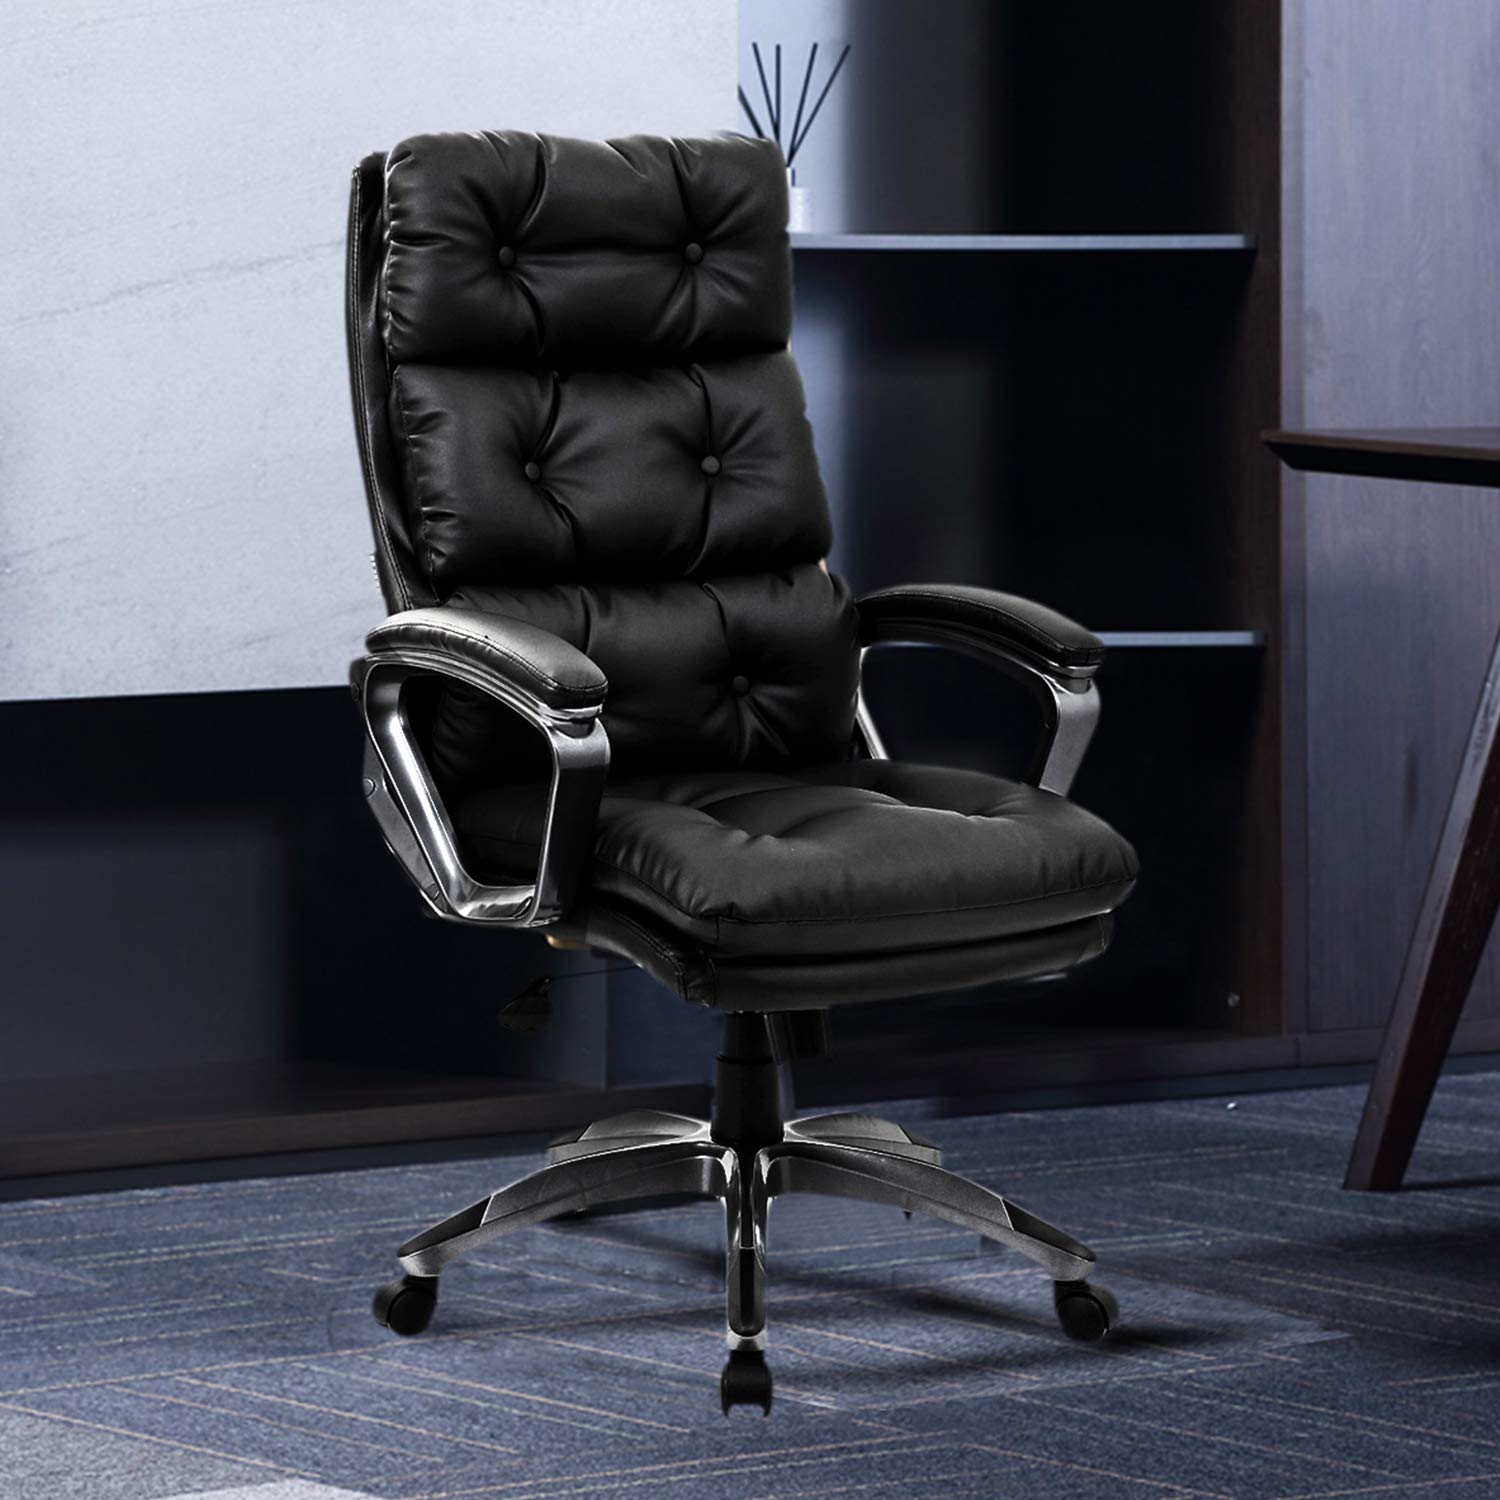 High Back Executive Office Chair Comfortable Leather Ergonomic Computer Task Chair For Lumbar Support Big And Tall Desk Chair With Curved Armrests Height Adjustable Tilt Black 400 Lbs Buy Online In China At China Desertcart Com